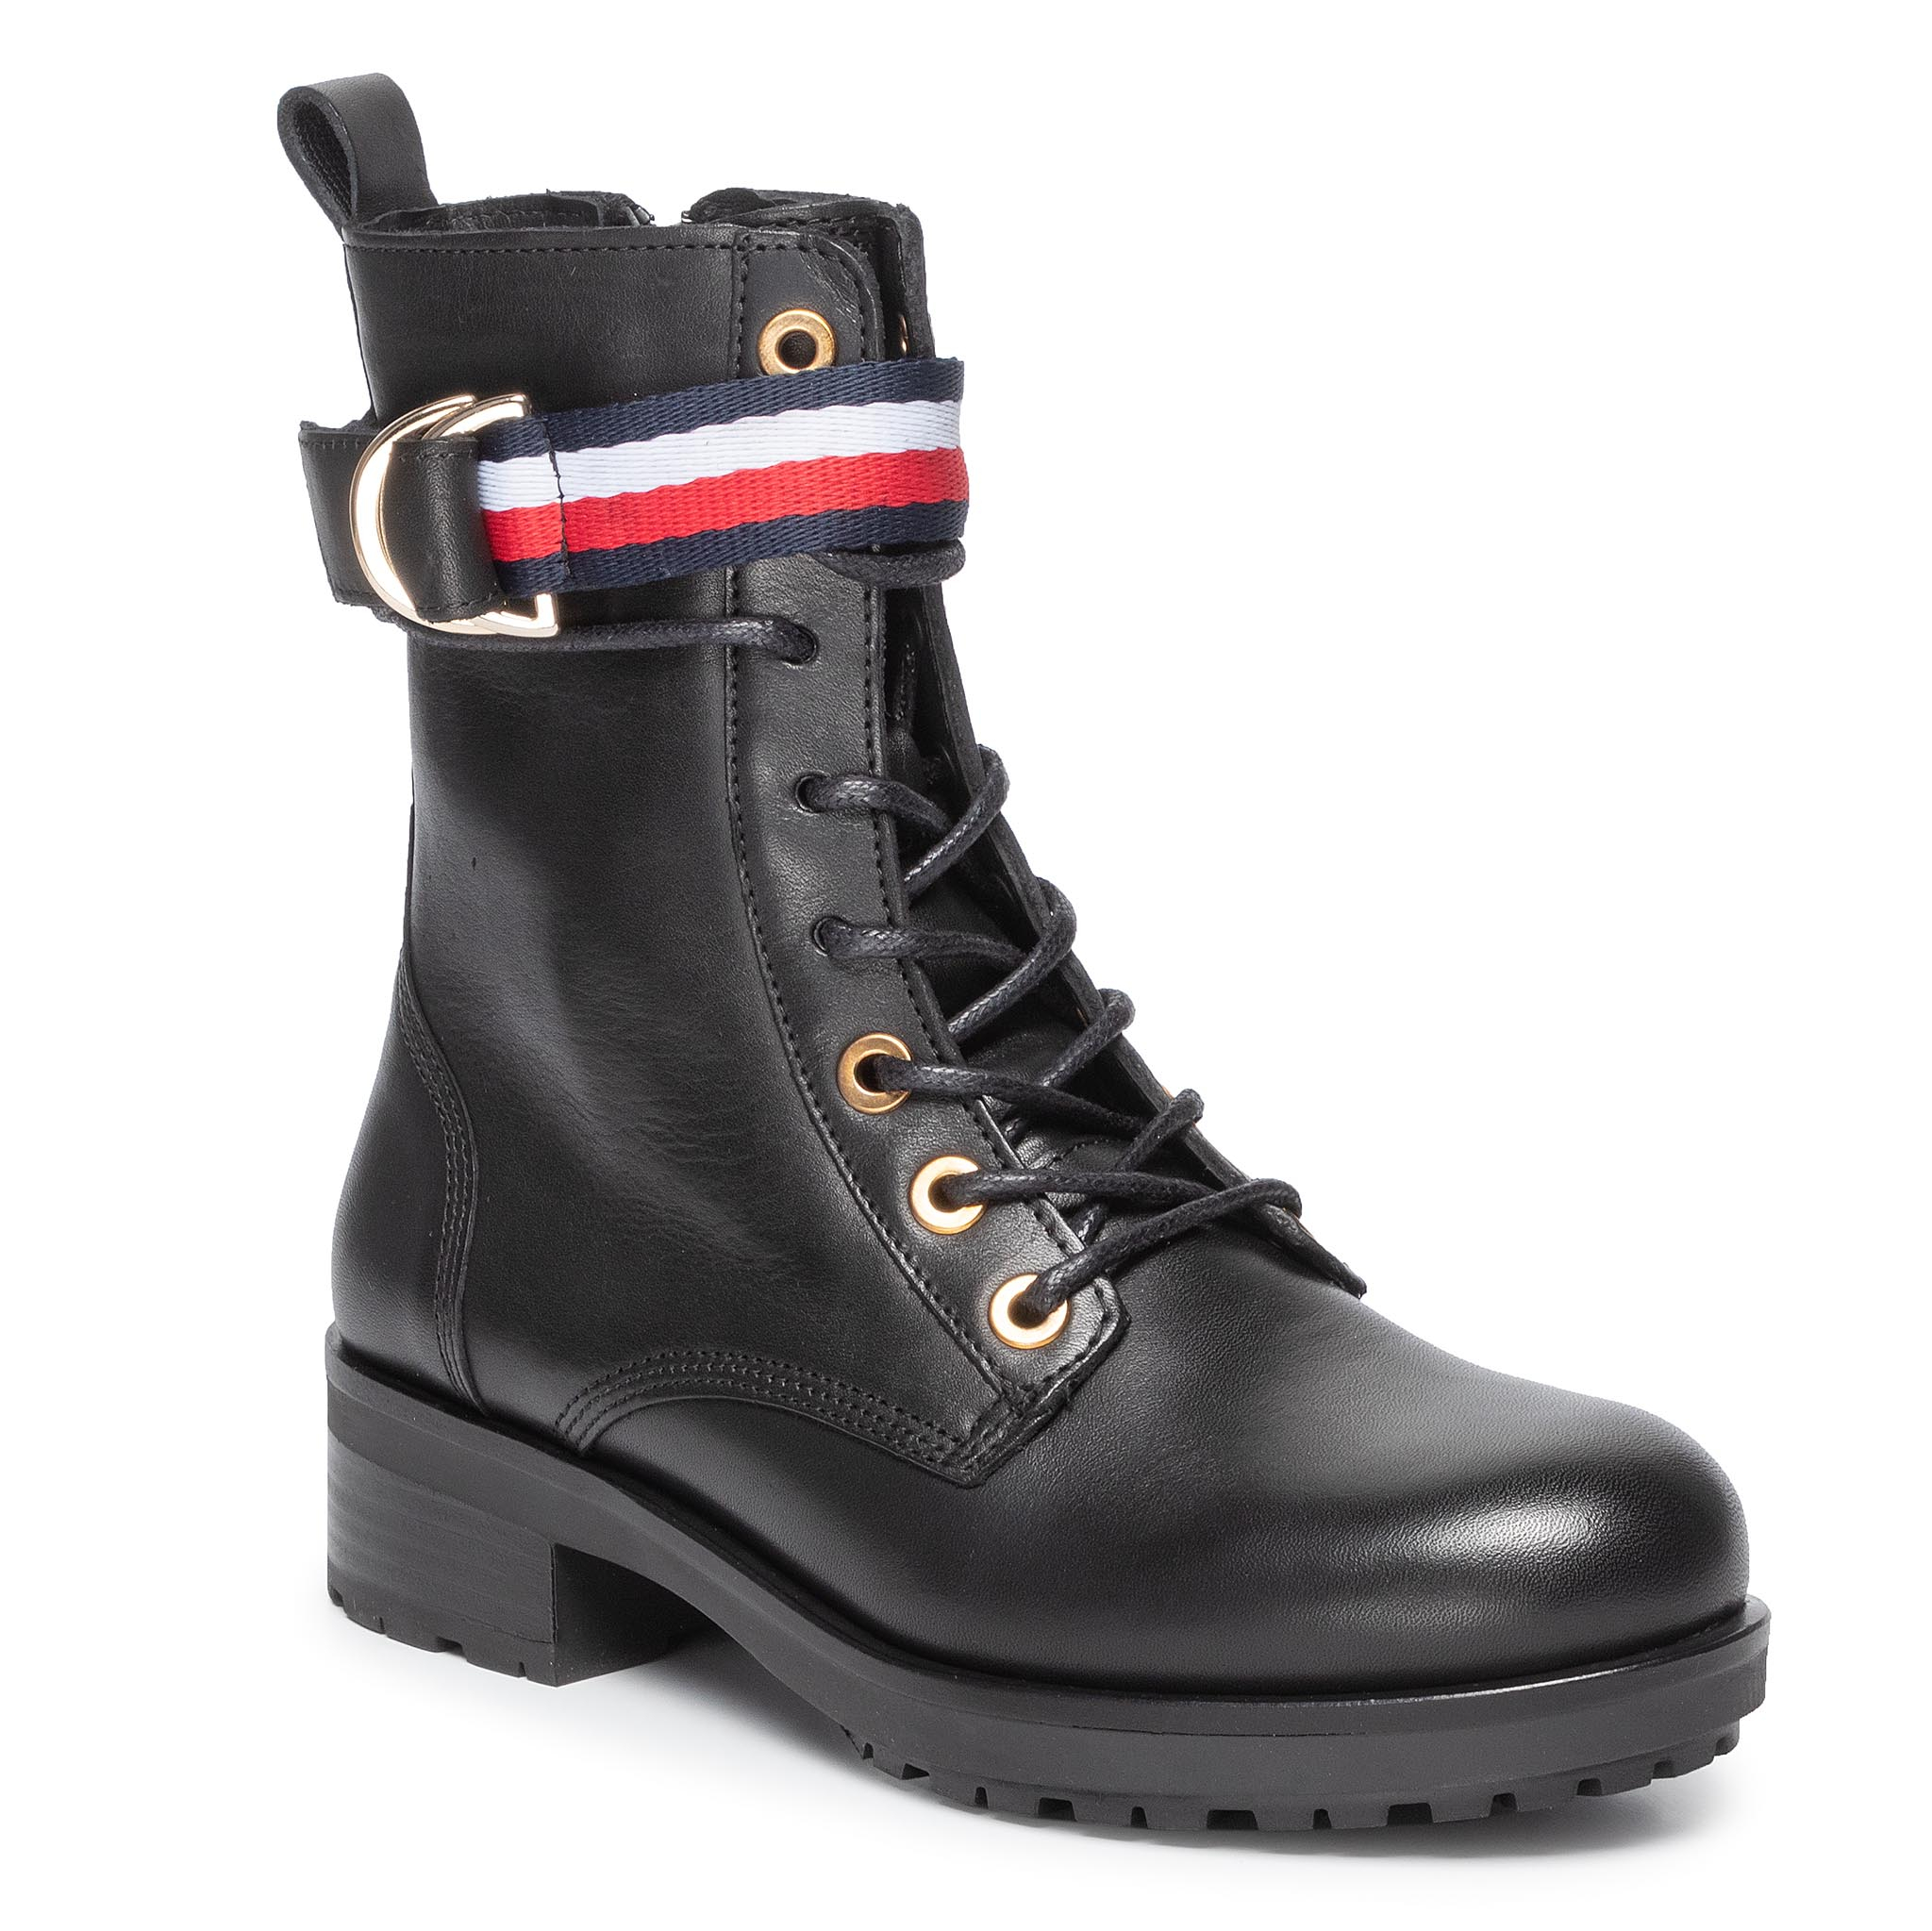 Botine TOMMY HILFIGER - Corporate Ribbon Bikeboot FW0FW04326 Black 990